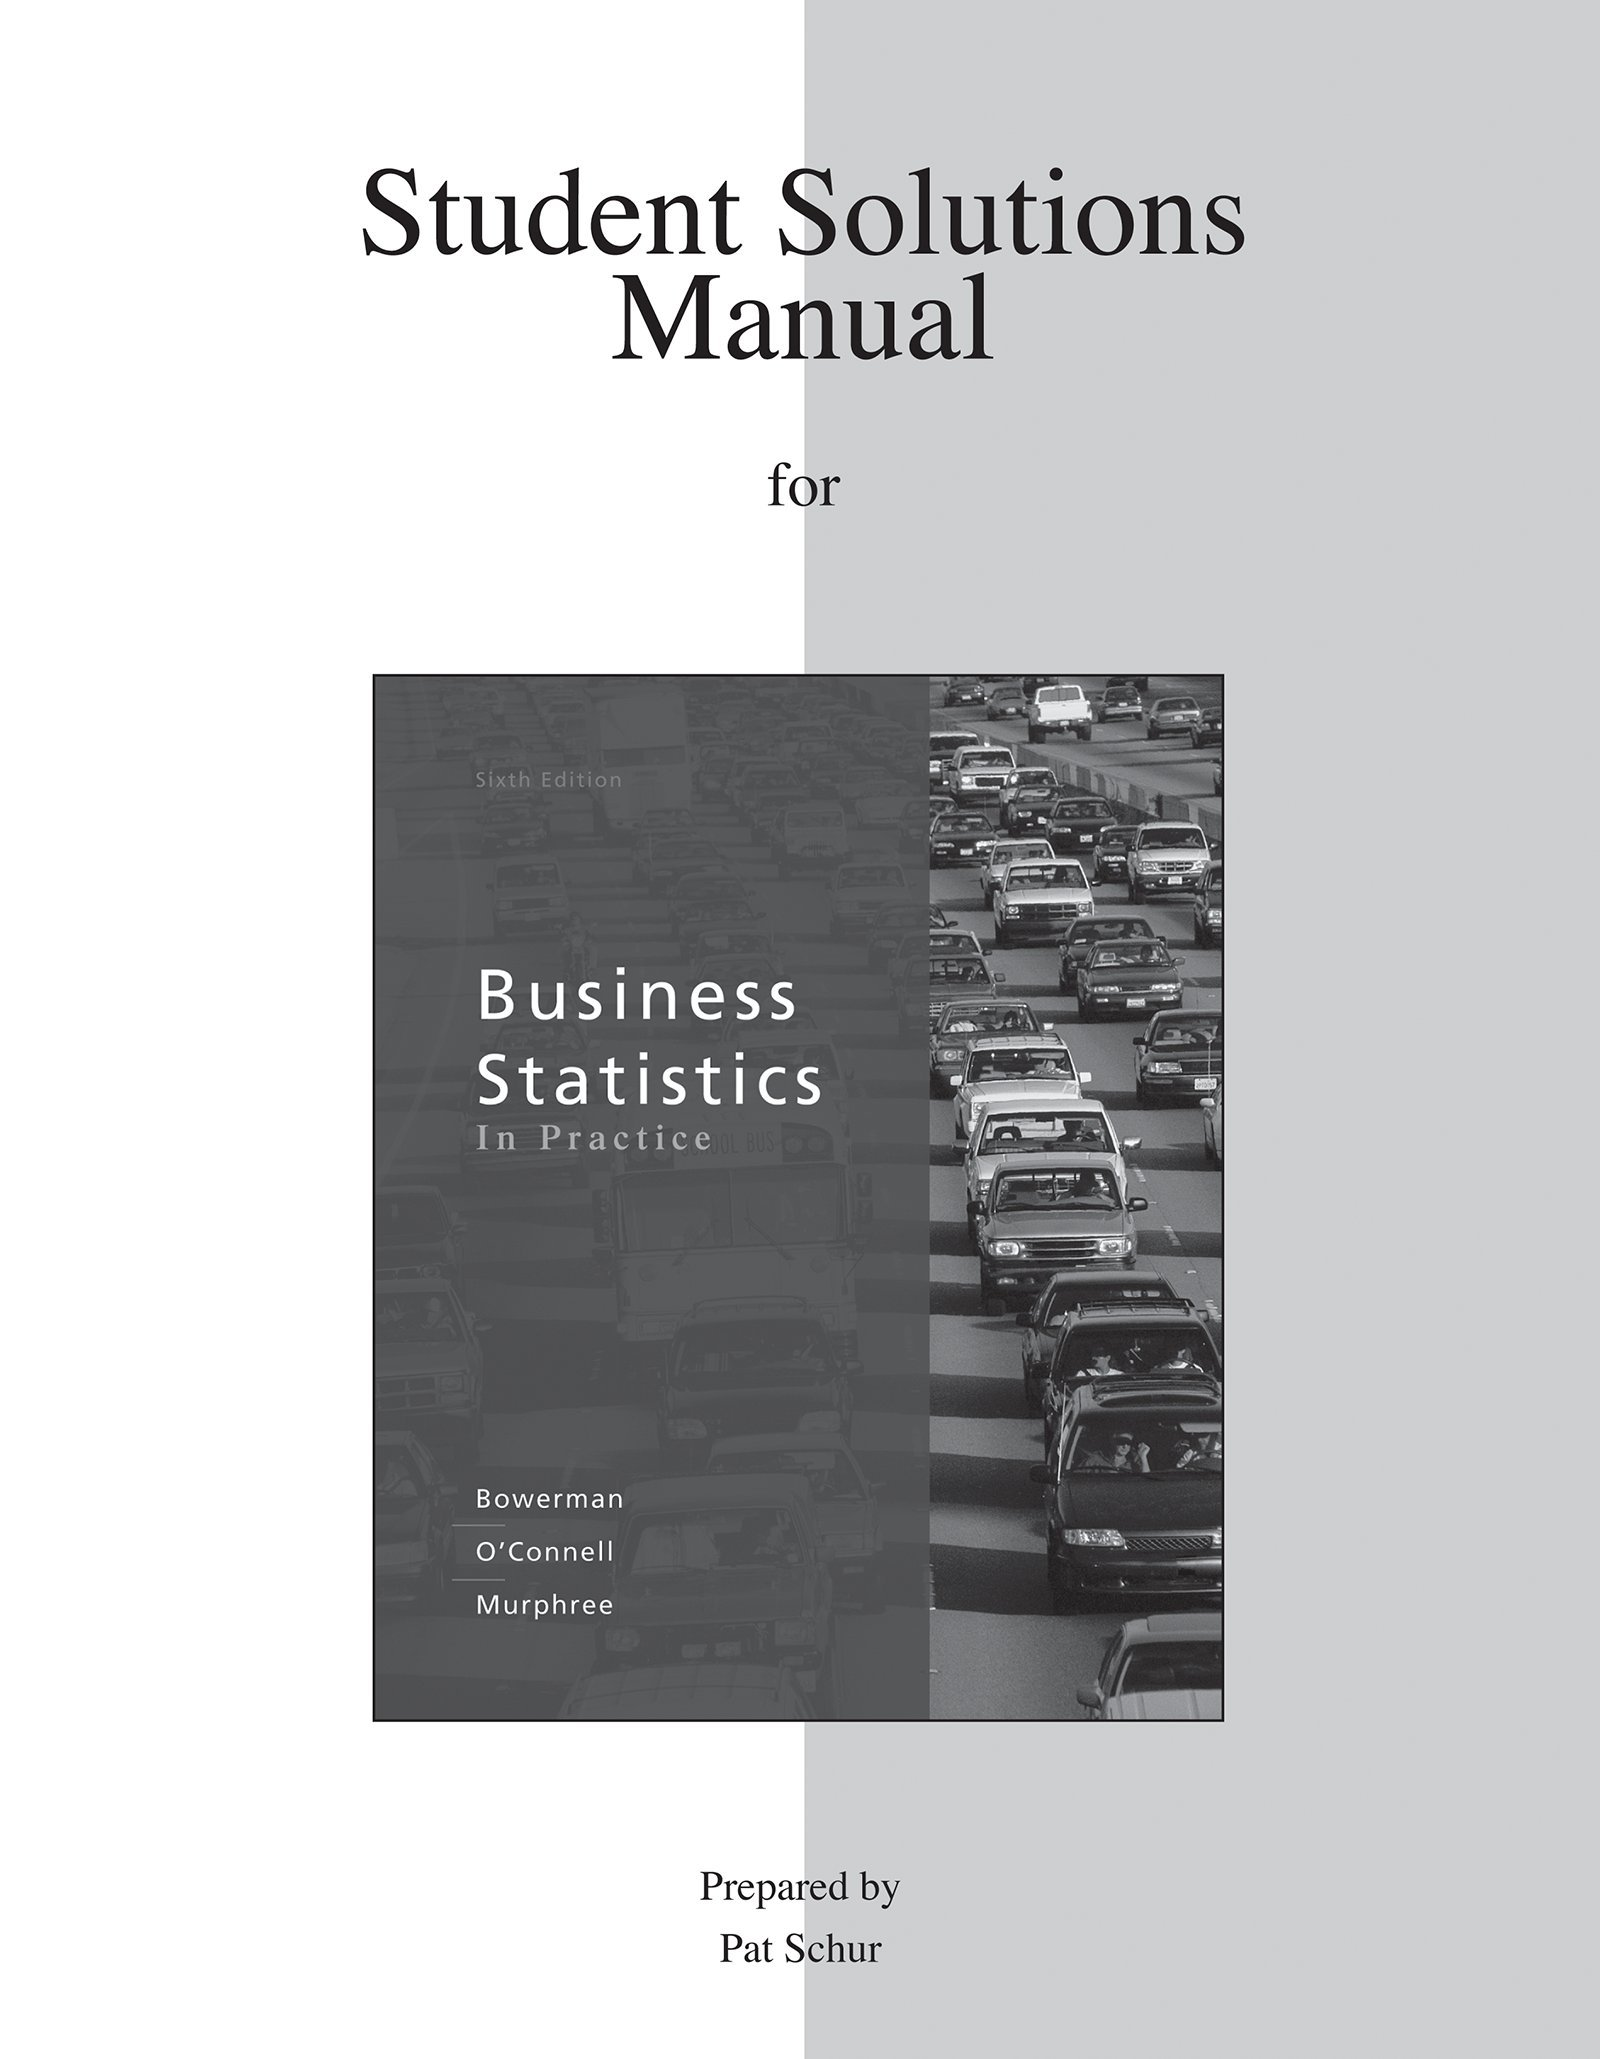 buy student solutions manual for business statistics in practice rh amazon in Business Statistics Examples Business Statistics Articles